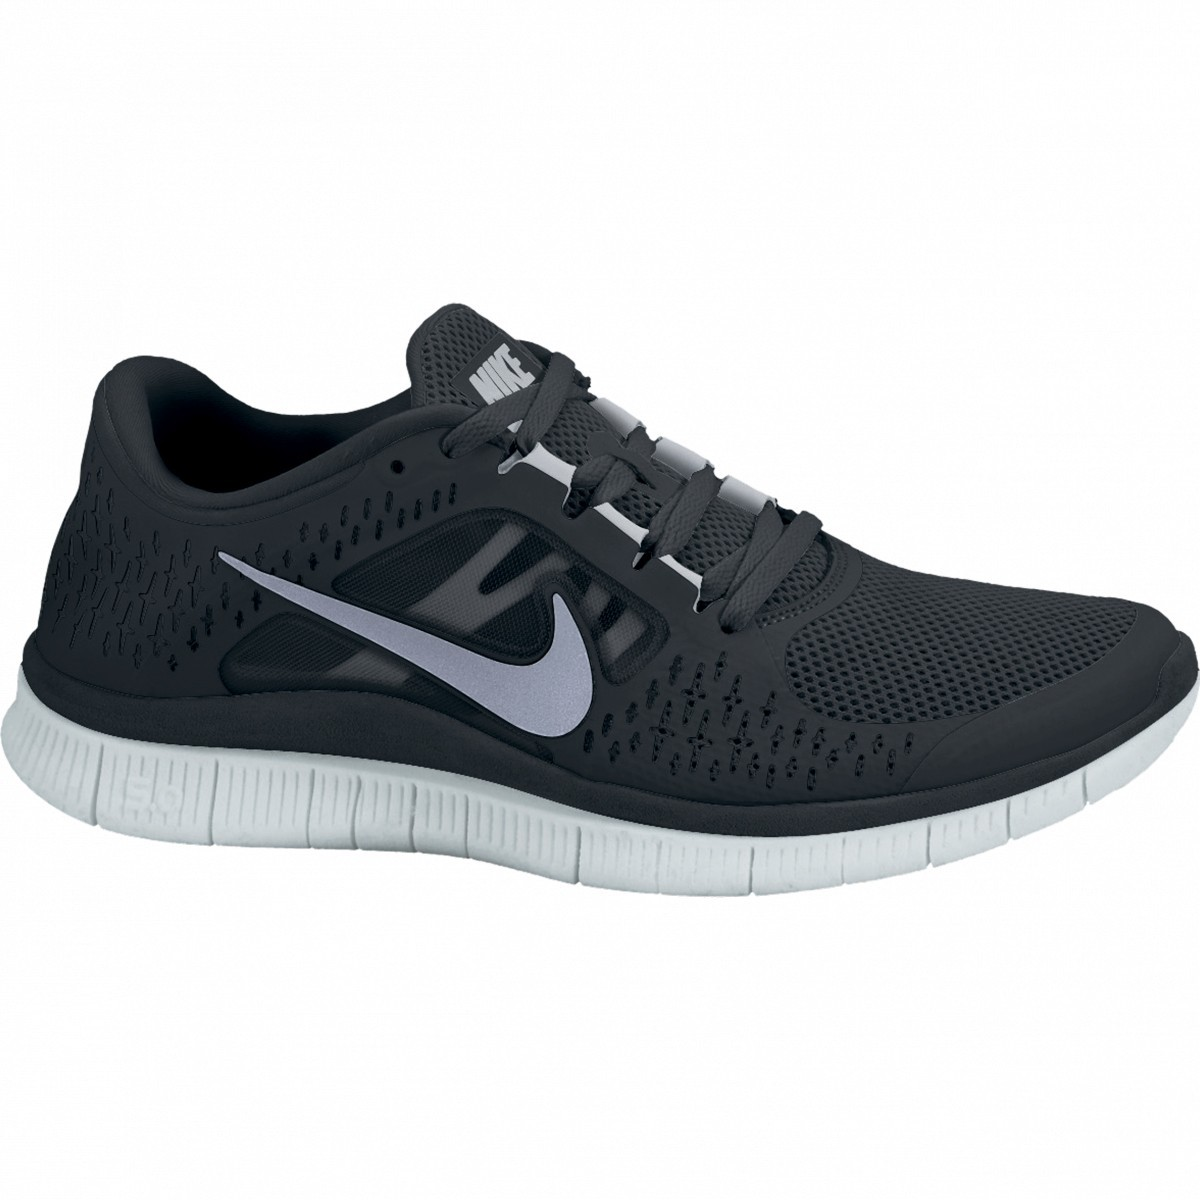 nike free run 3 herren laufschuh schwarz ebay. Black Bedroom Furniture Sets. Home Design Ideas